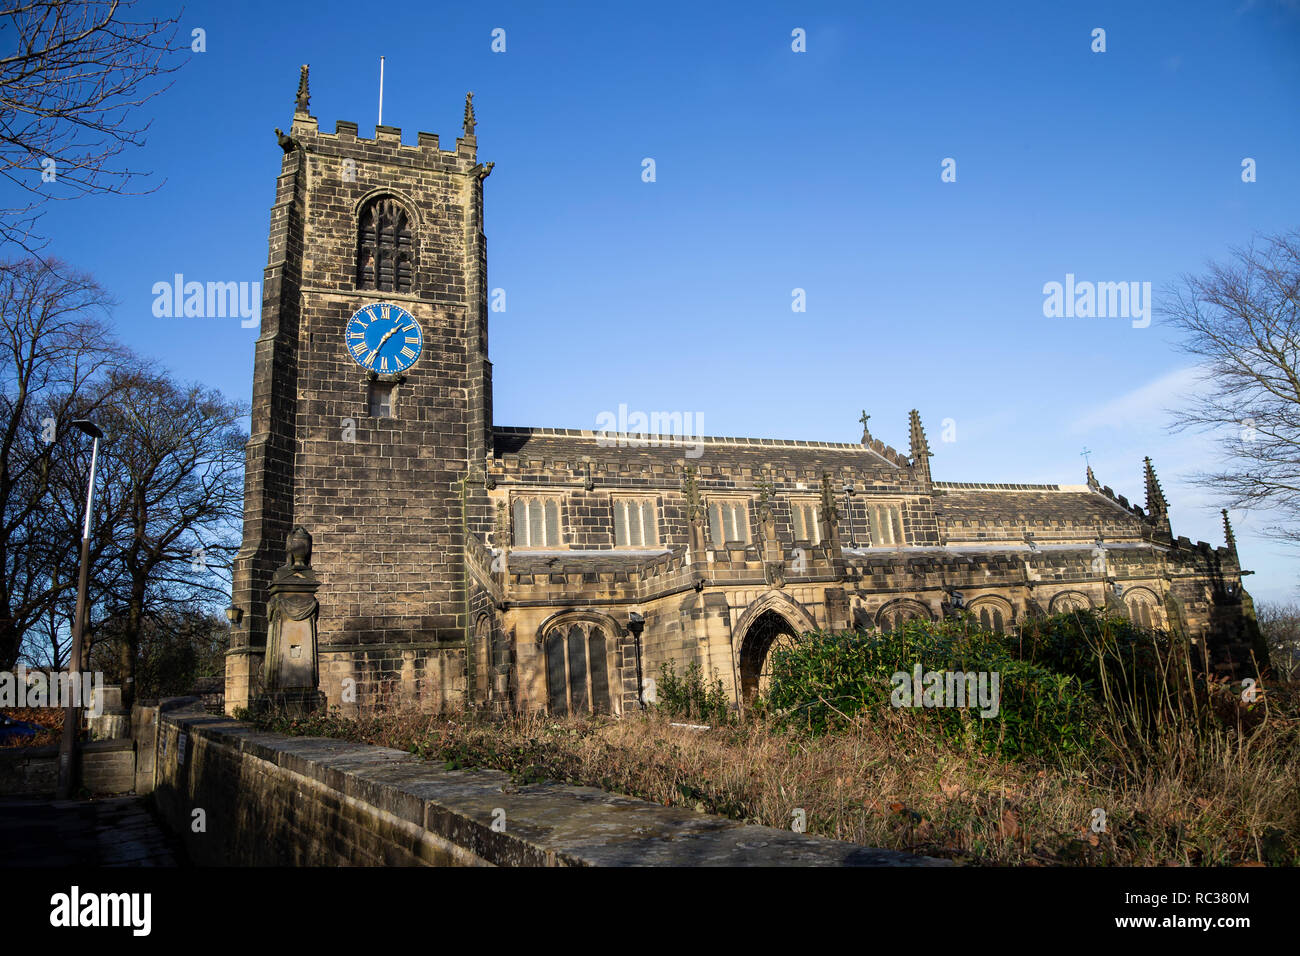 All Hallows Church formerly listed as Church of all Saints in Northgate, Almondbury, Huddersfield - Stock Image